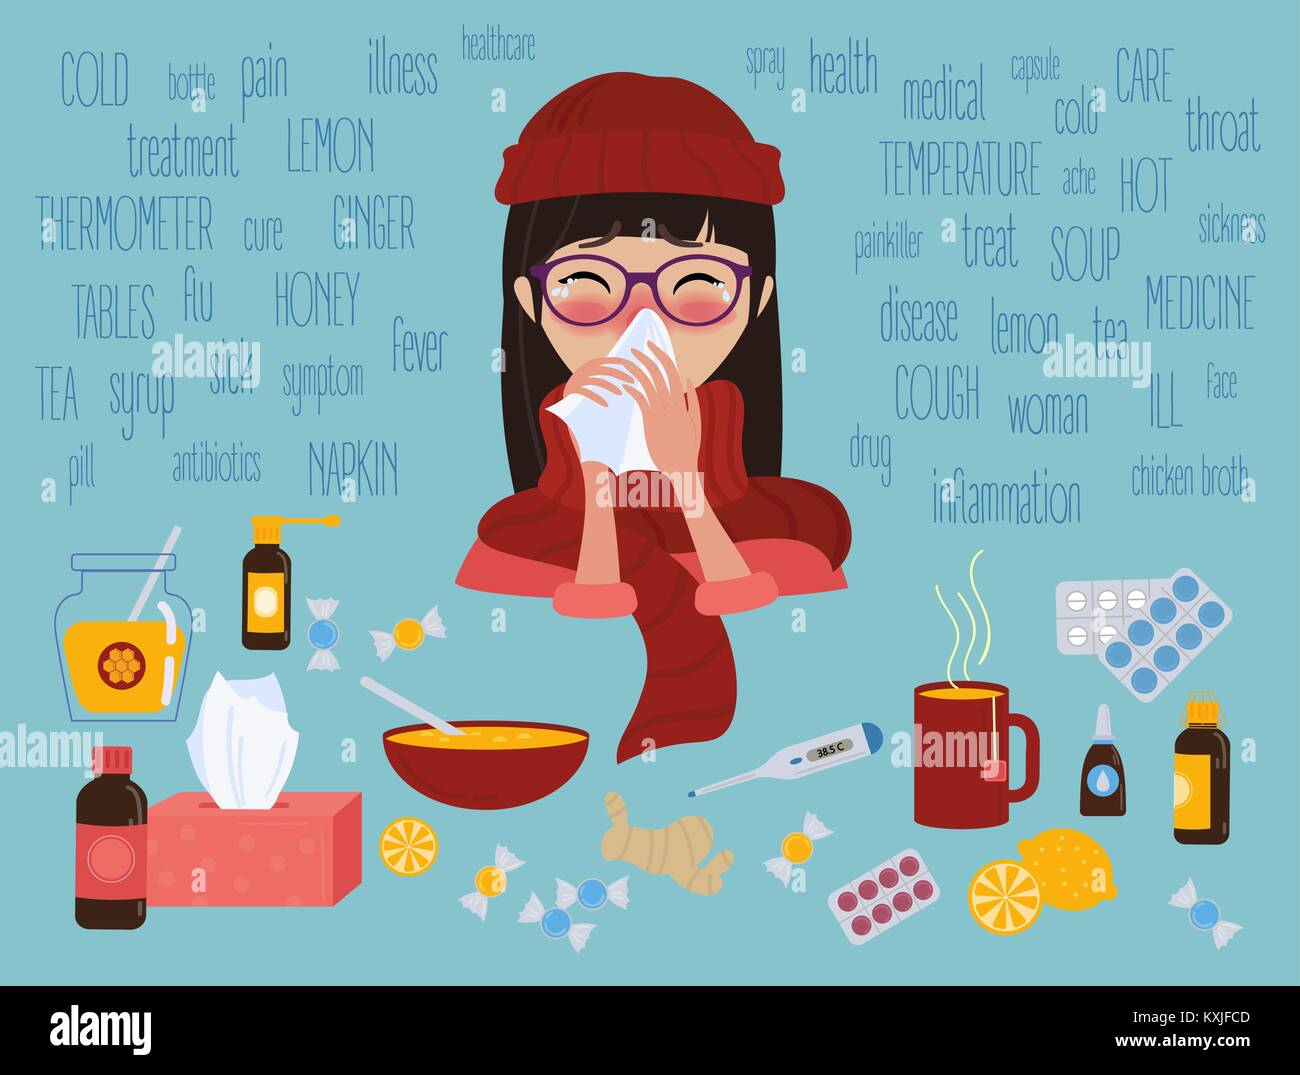 Young girl caught cold flu or virus. Treatment of illness - Stock Image